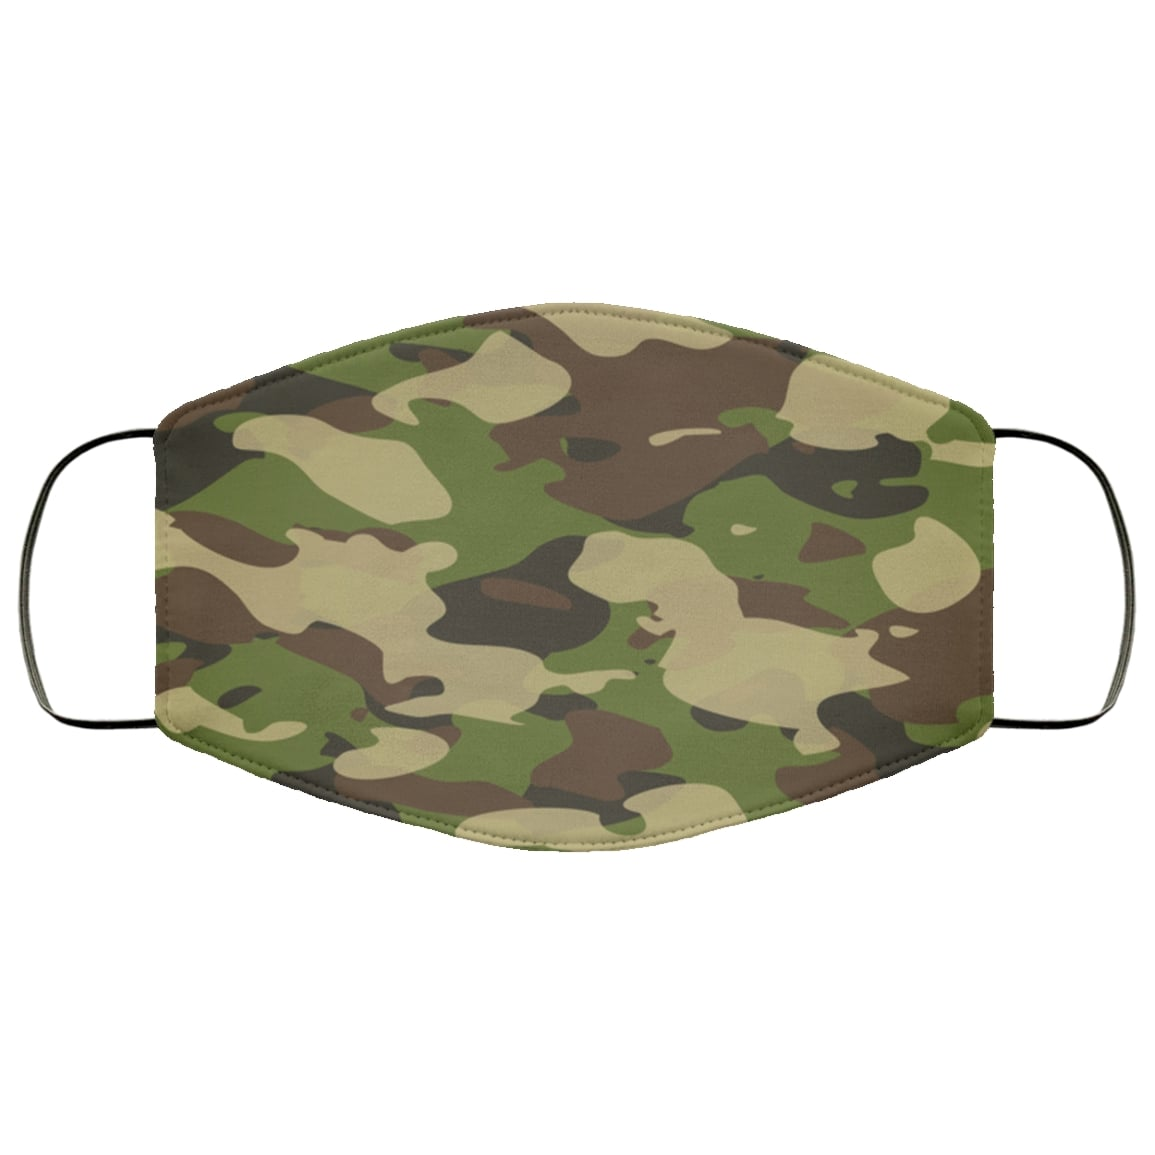 Camouflage army military anti pollution face mask 1